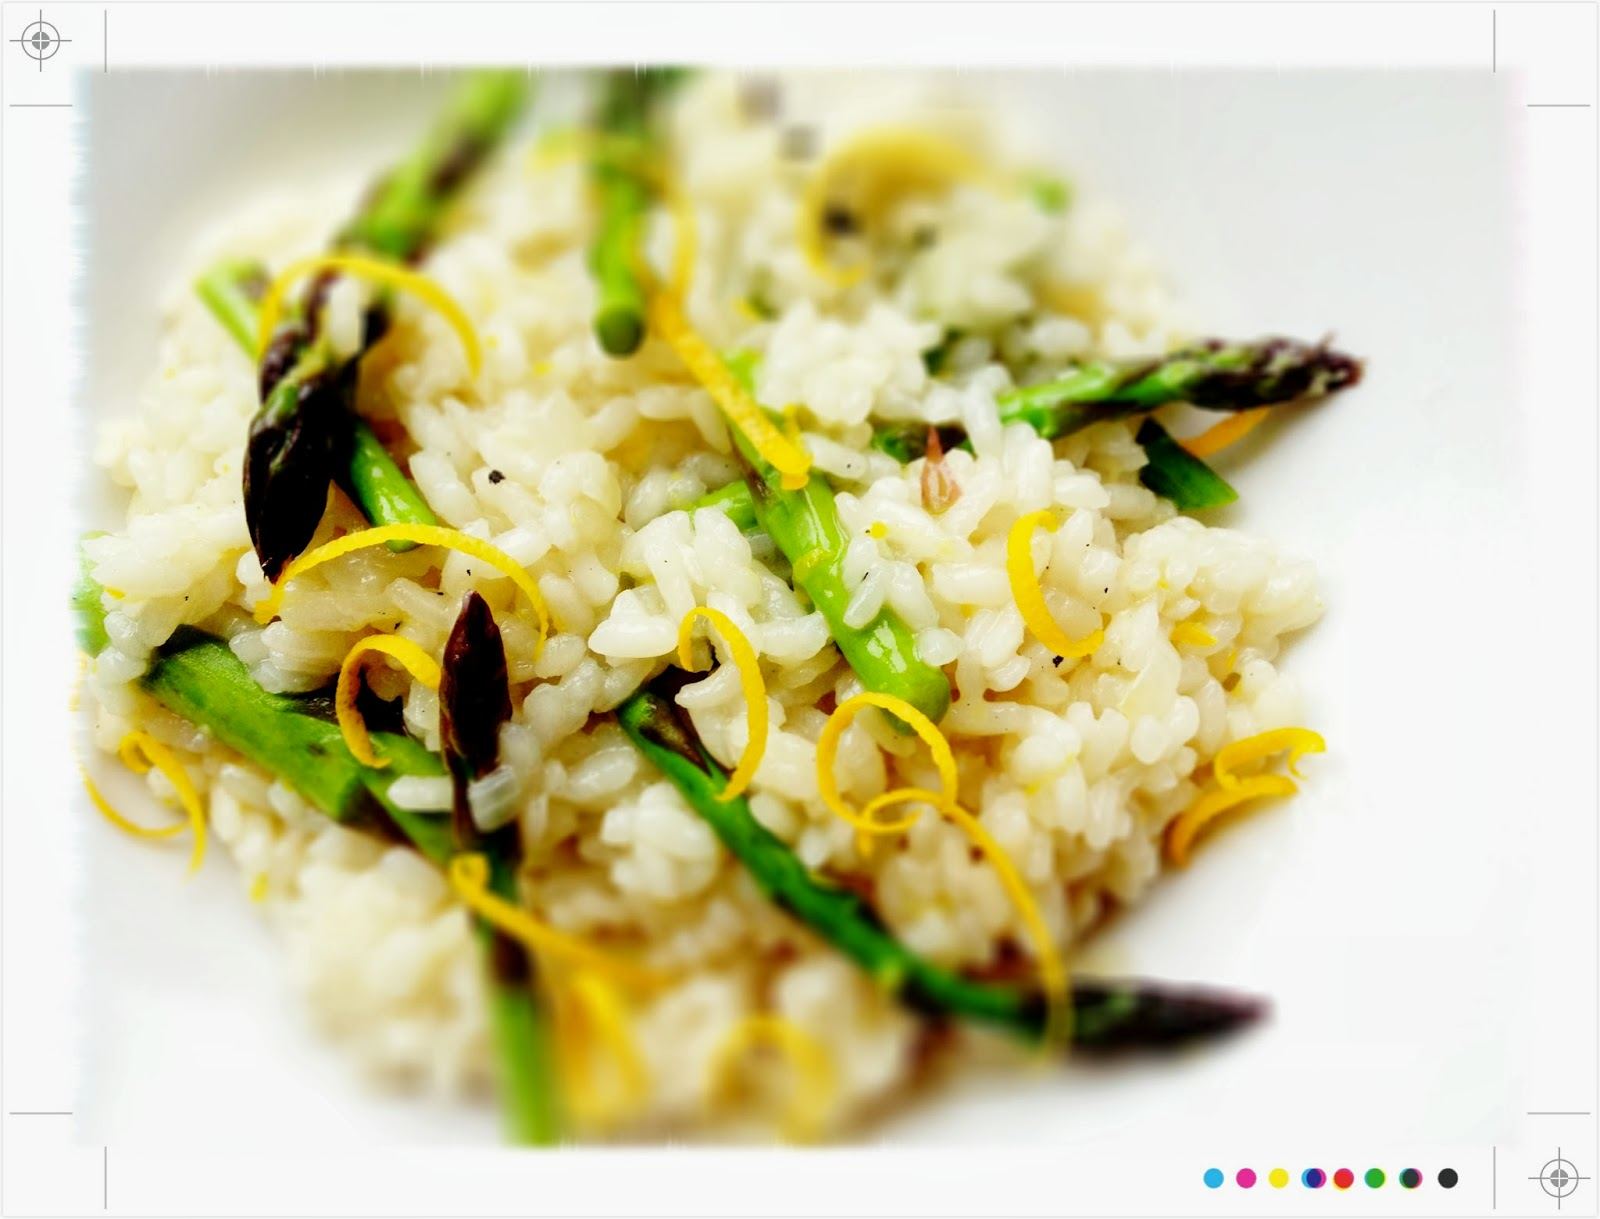 If you like this you might like this Creamy Lemon & Asparagus Pasta